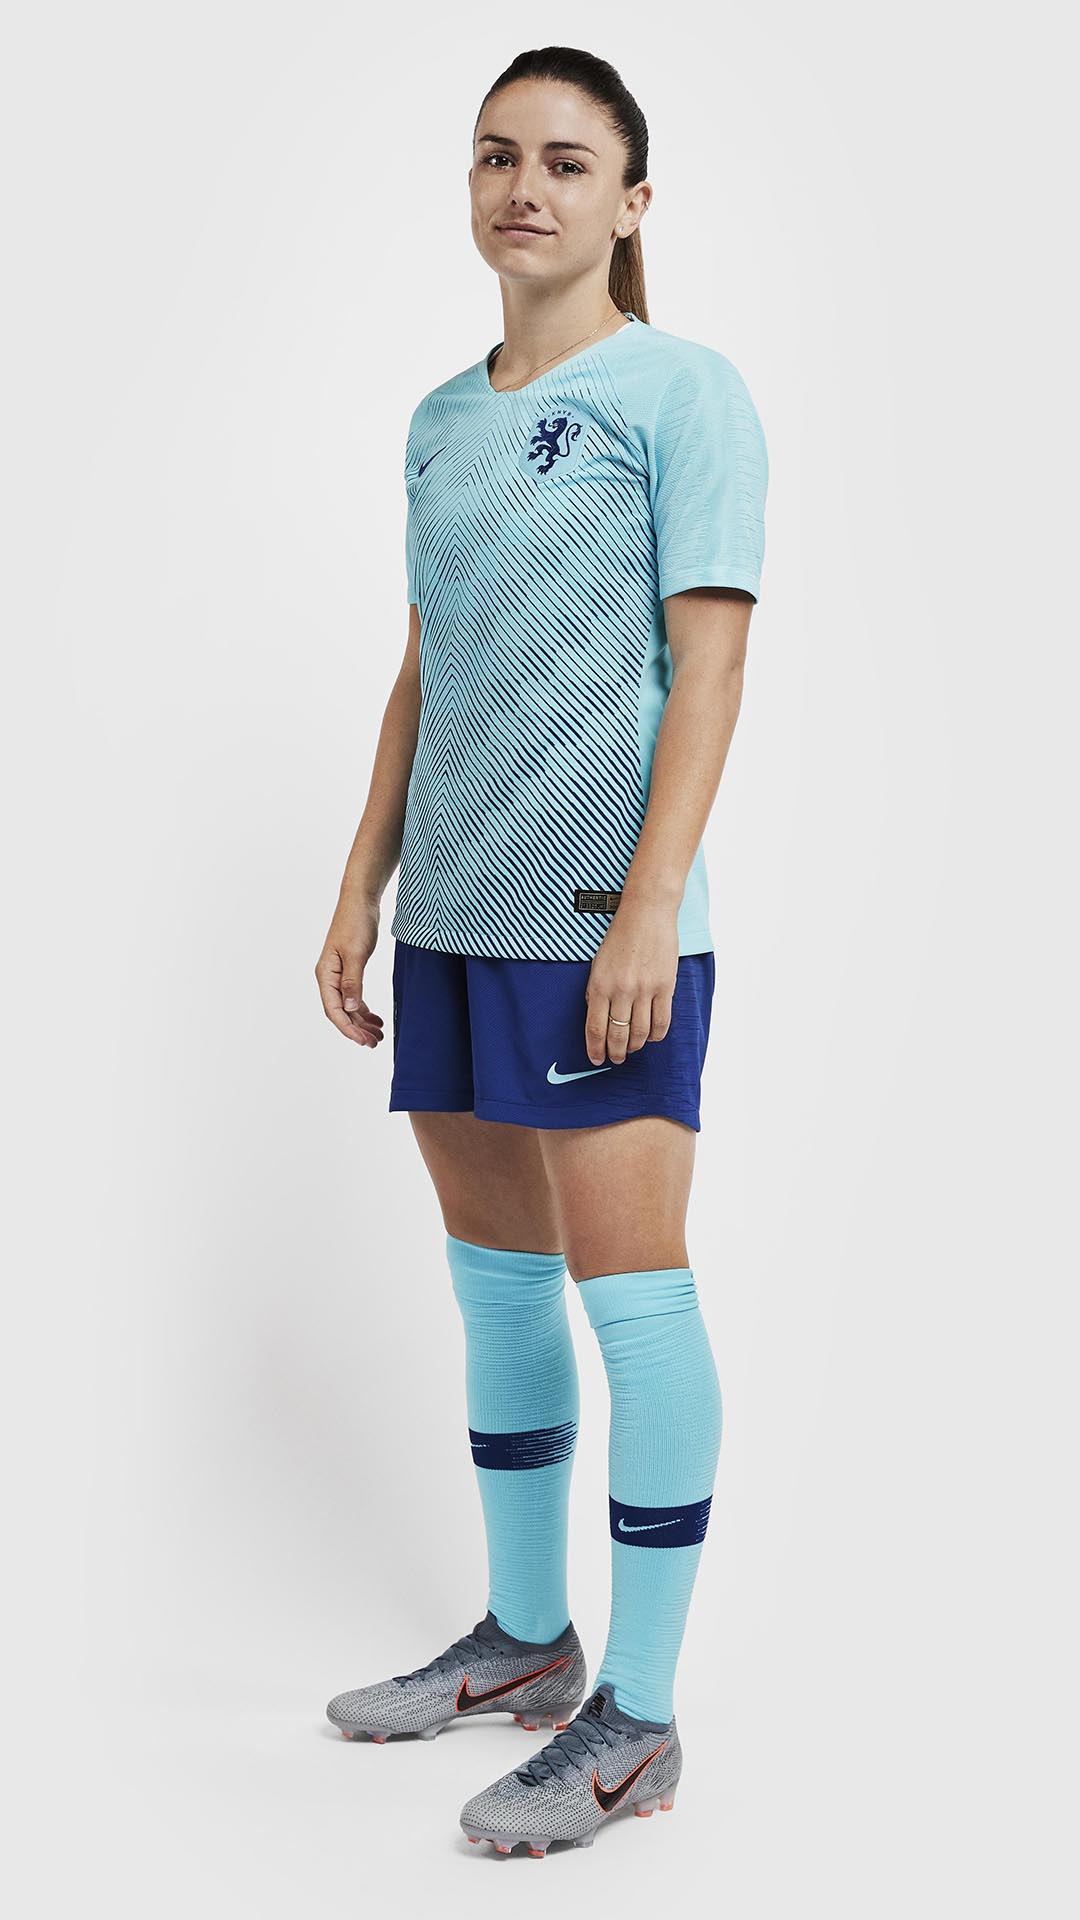 Nike_National_Team_Kit_Niederlande_7.jpg